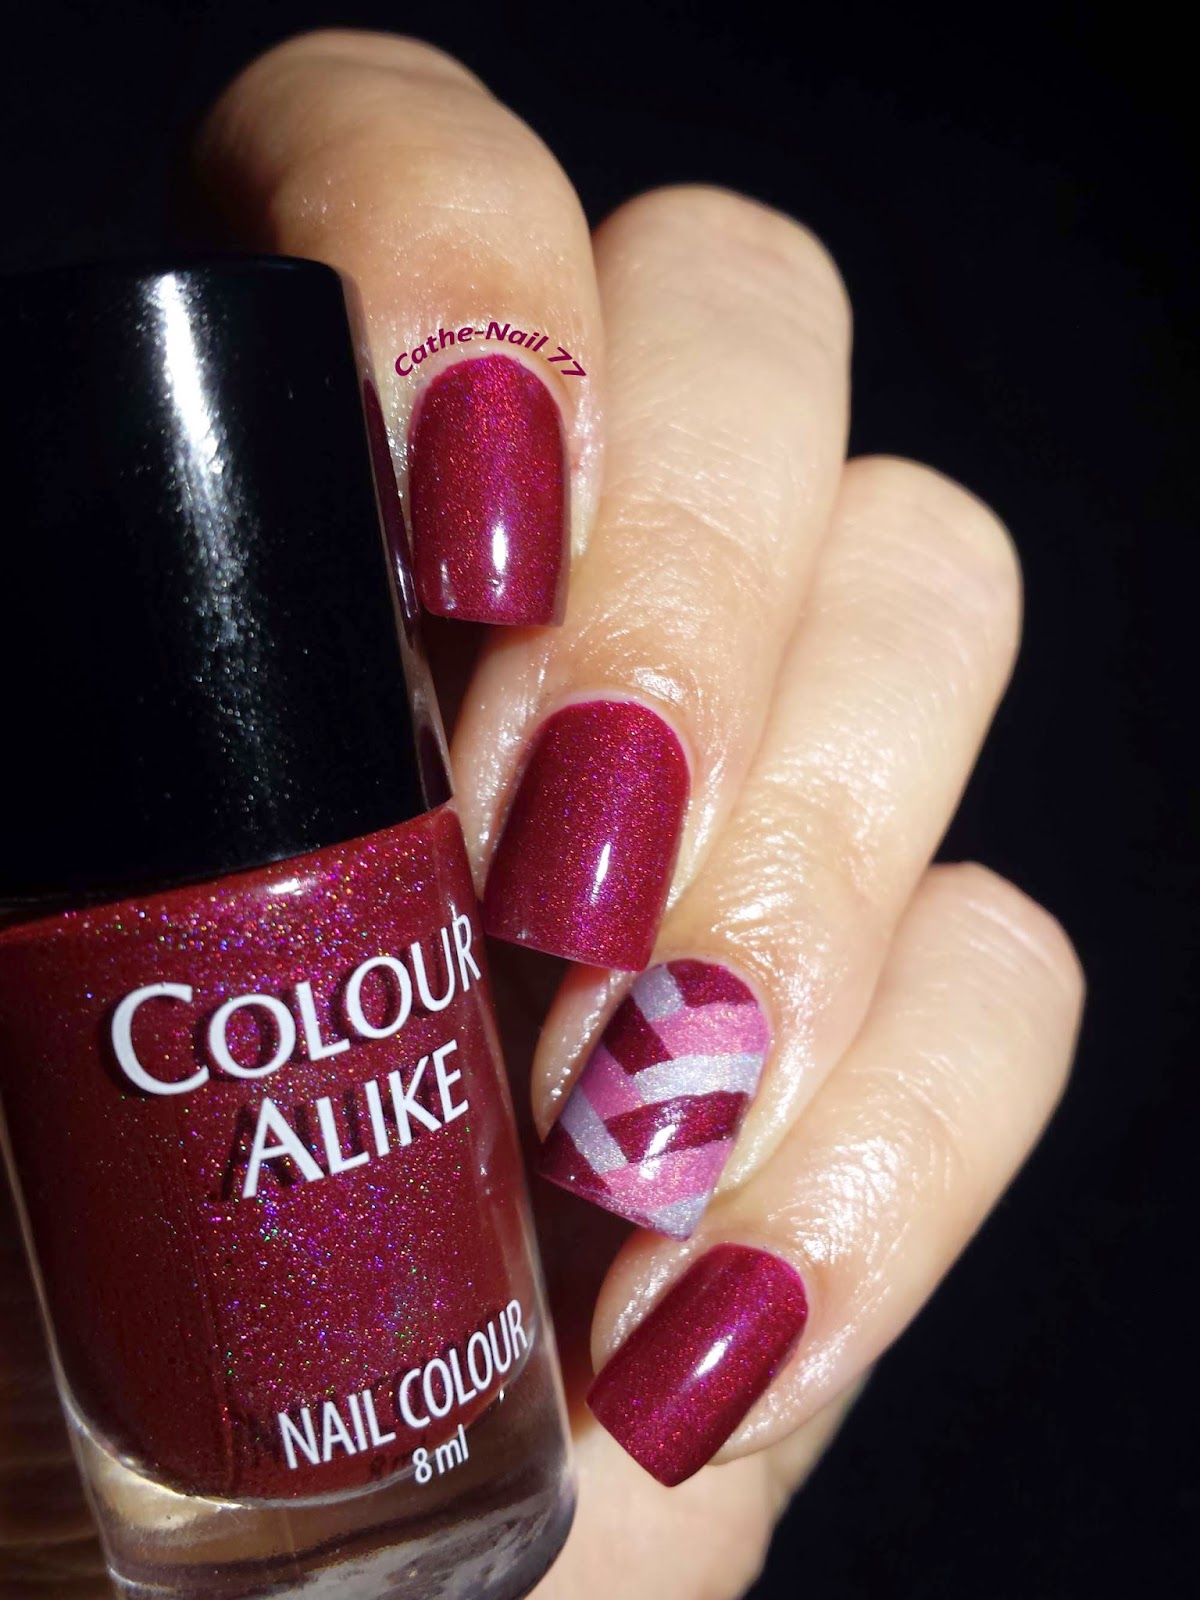 http://cathenail.blogspot.fr/2014/09/colour-alike-503-et-braided-accent-nail.html